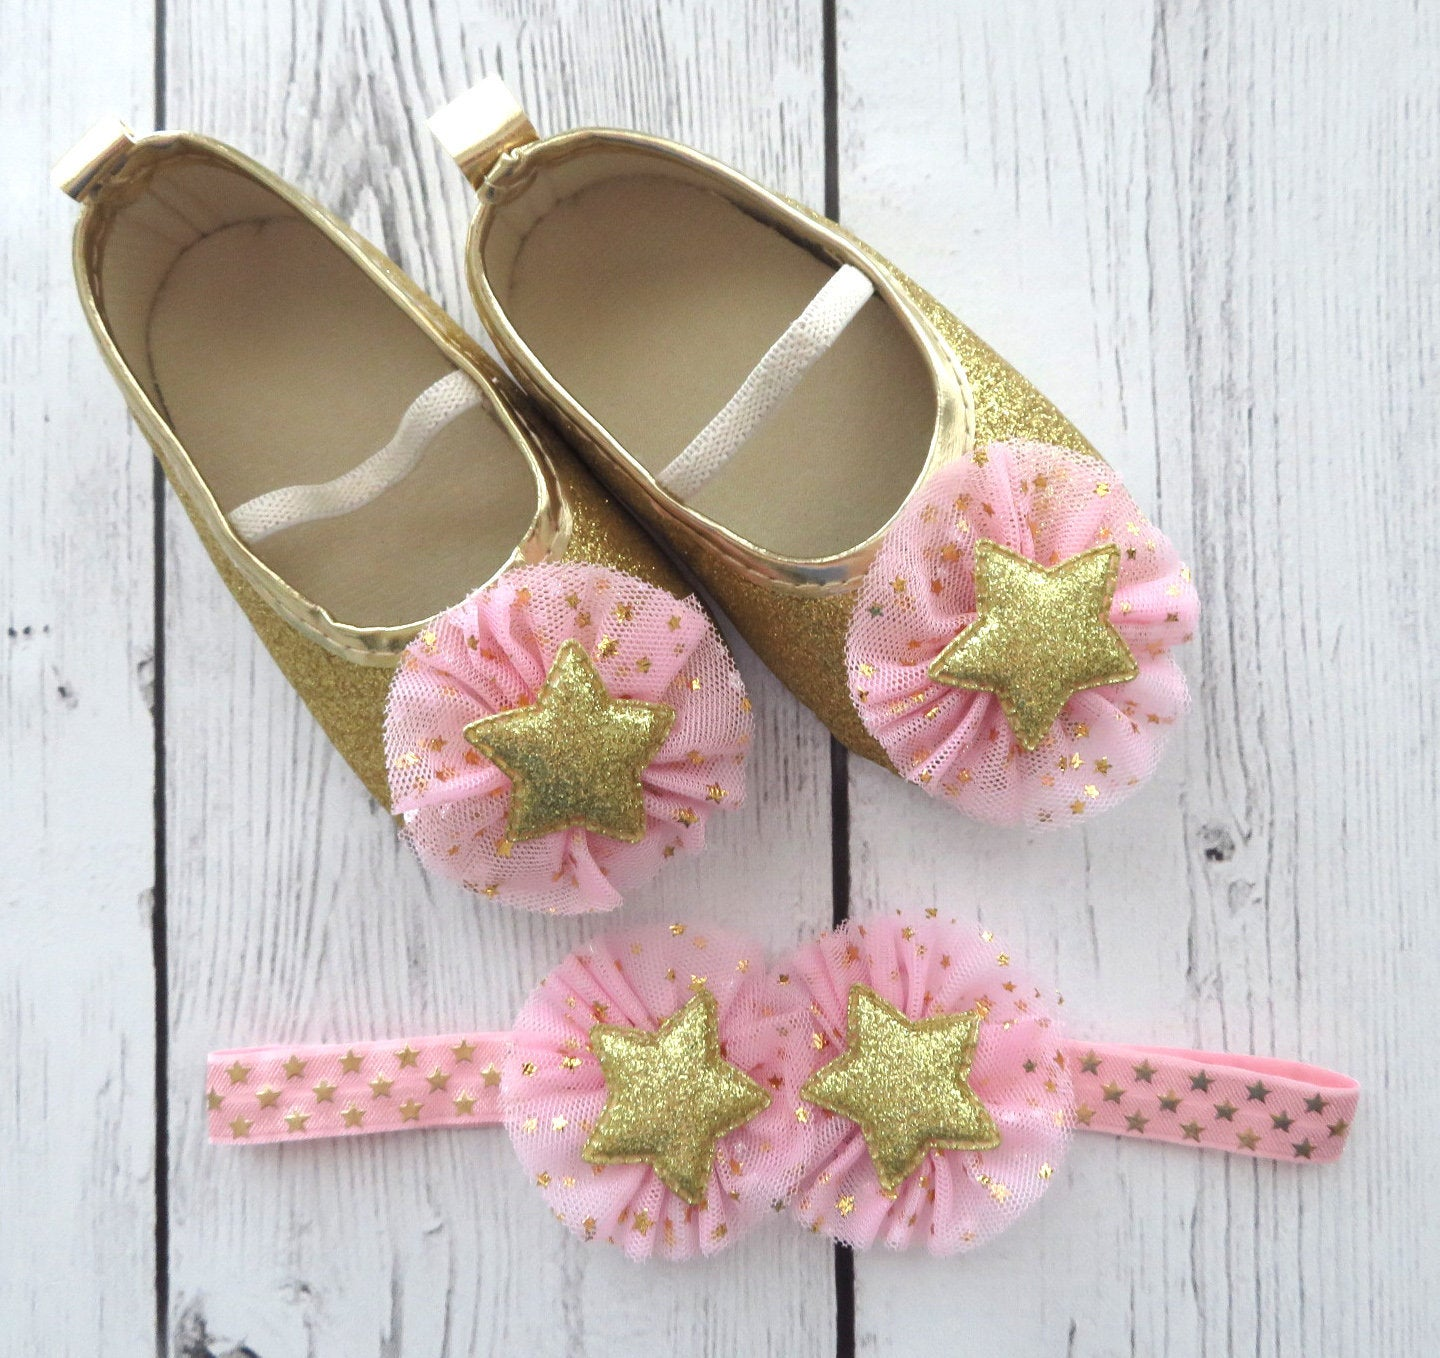 Twinkle Twinkle Little Star First Birthday Shoes & Headband in light pink and gold- 1st bday, star shoes, twinkle shoes, star one birthday